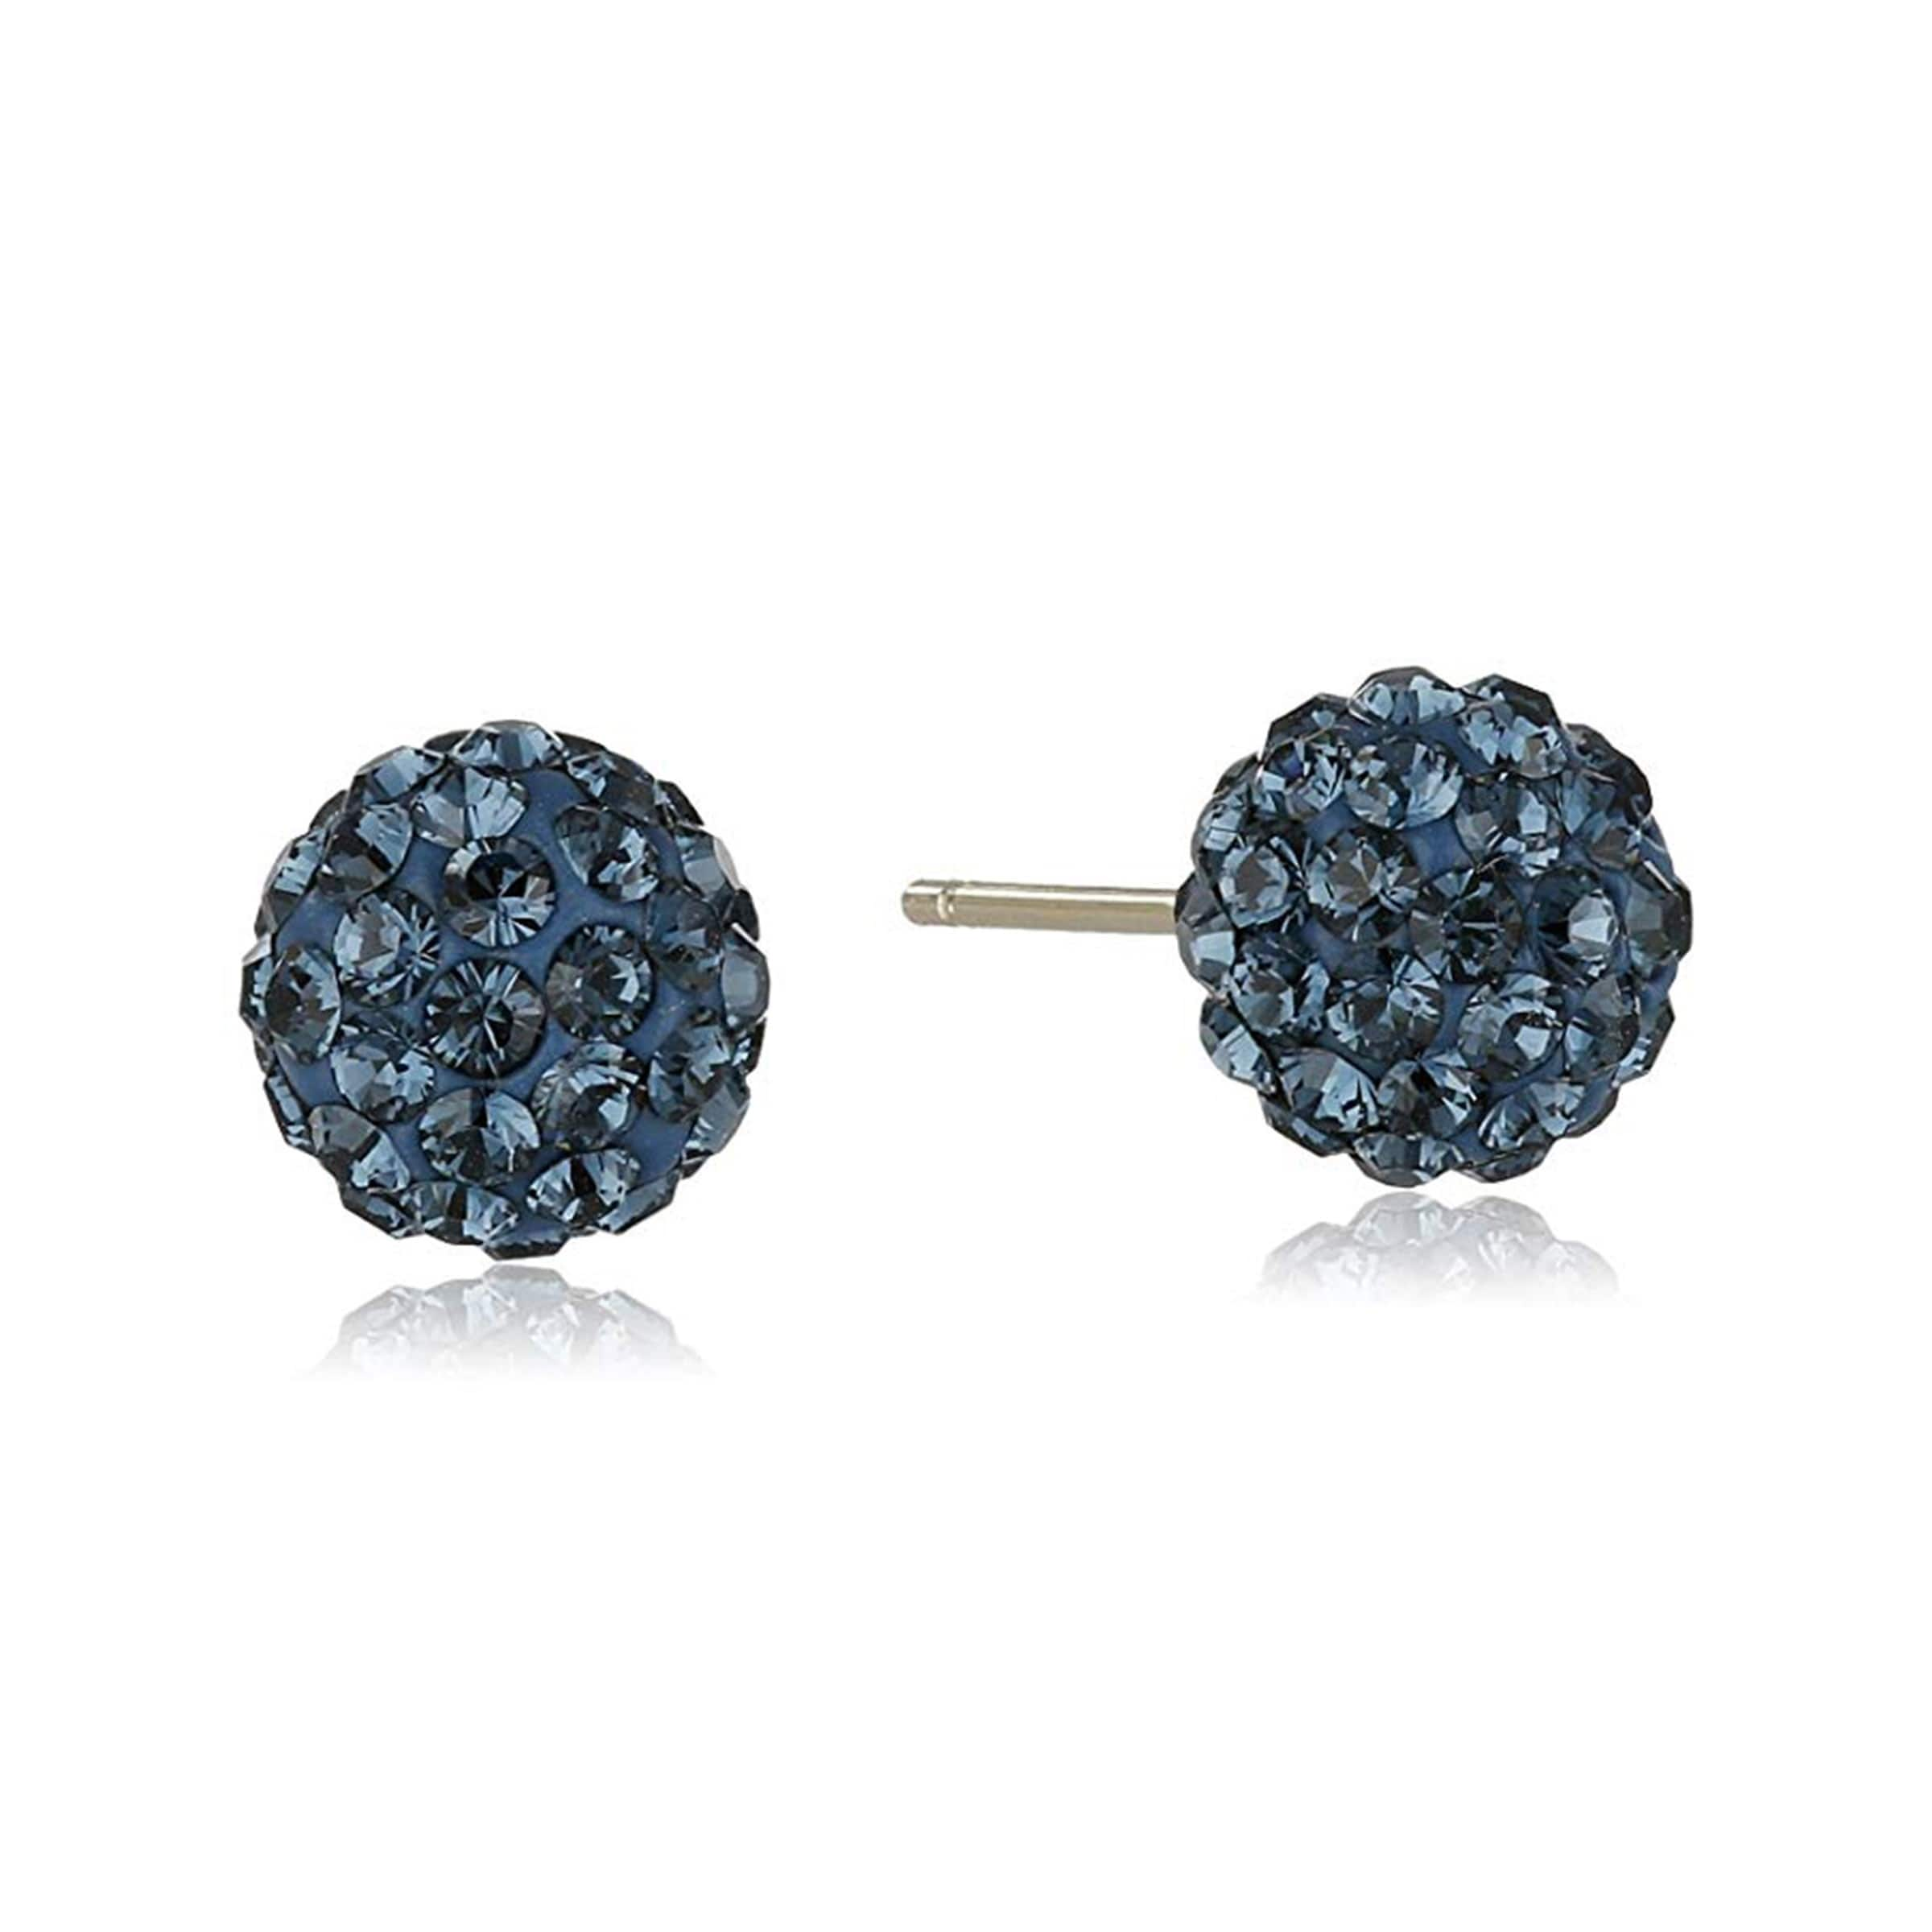 Crystaluxe Ball Stud Earrings with Navy Crystals in 14K Gold - Blue